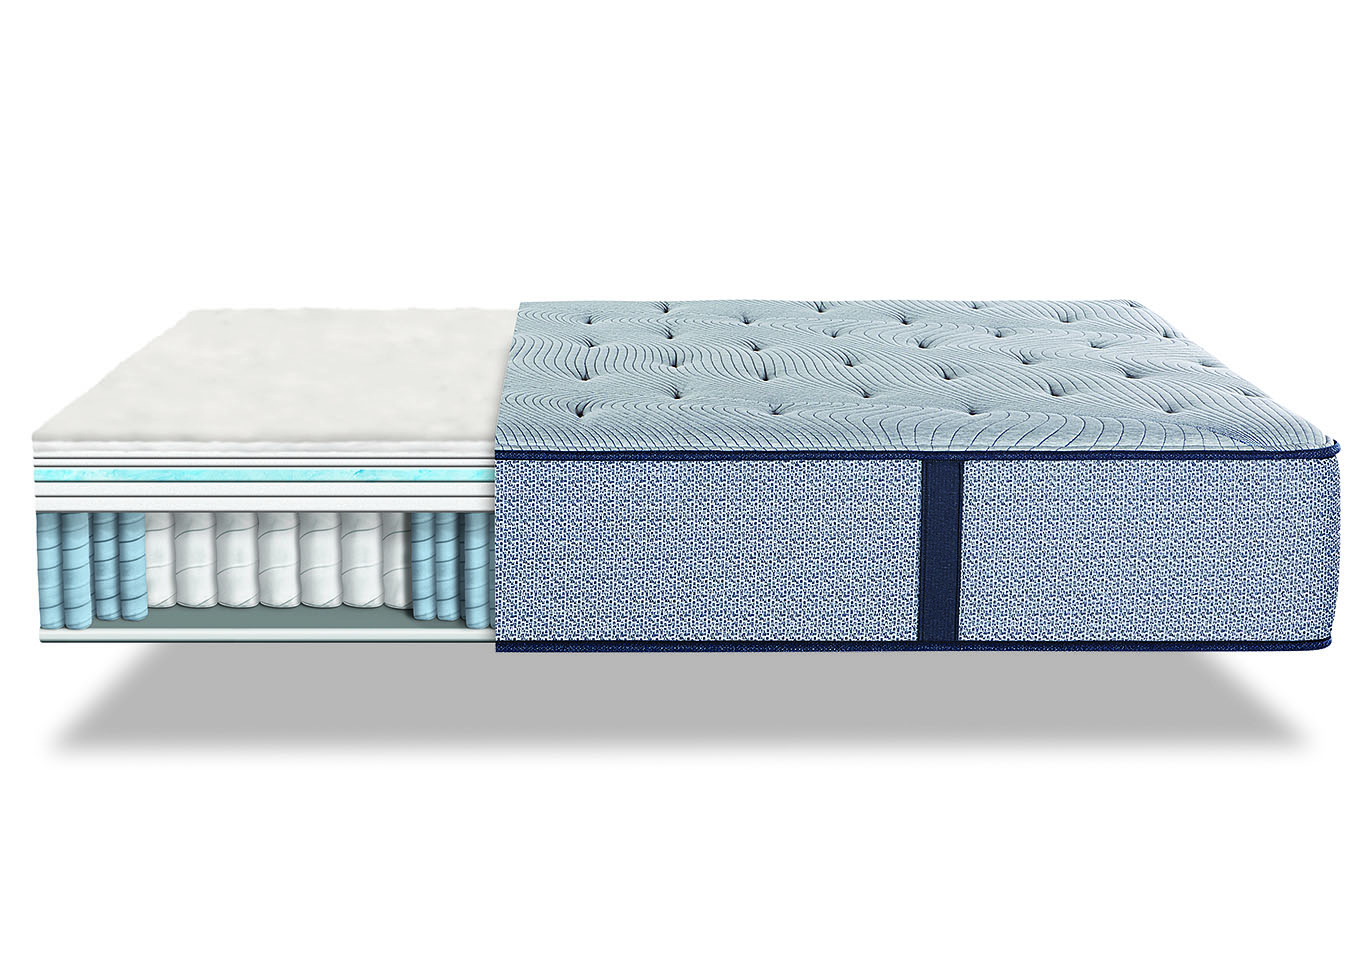 Standale II Luxury Firm Full Mattress,Huffman Koos